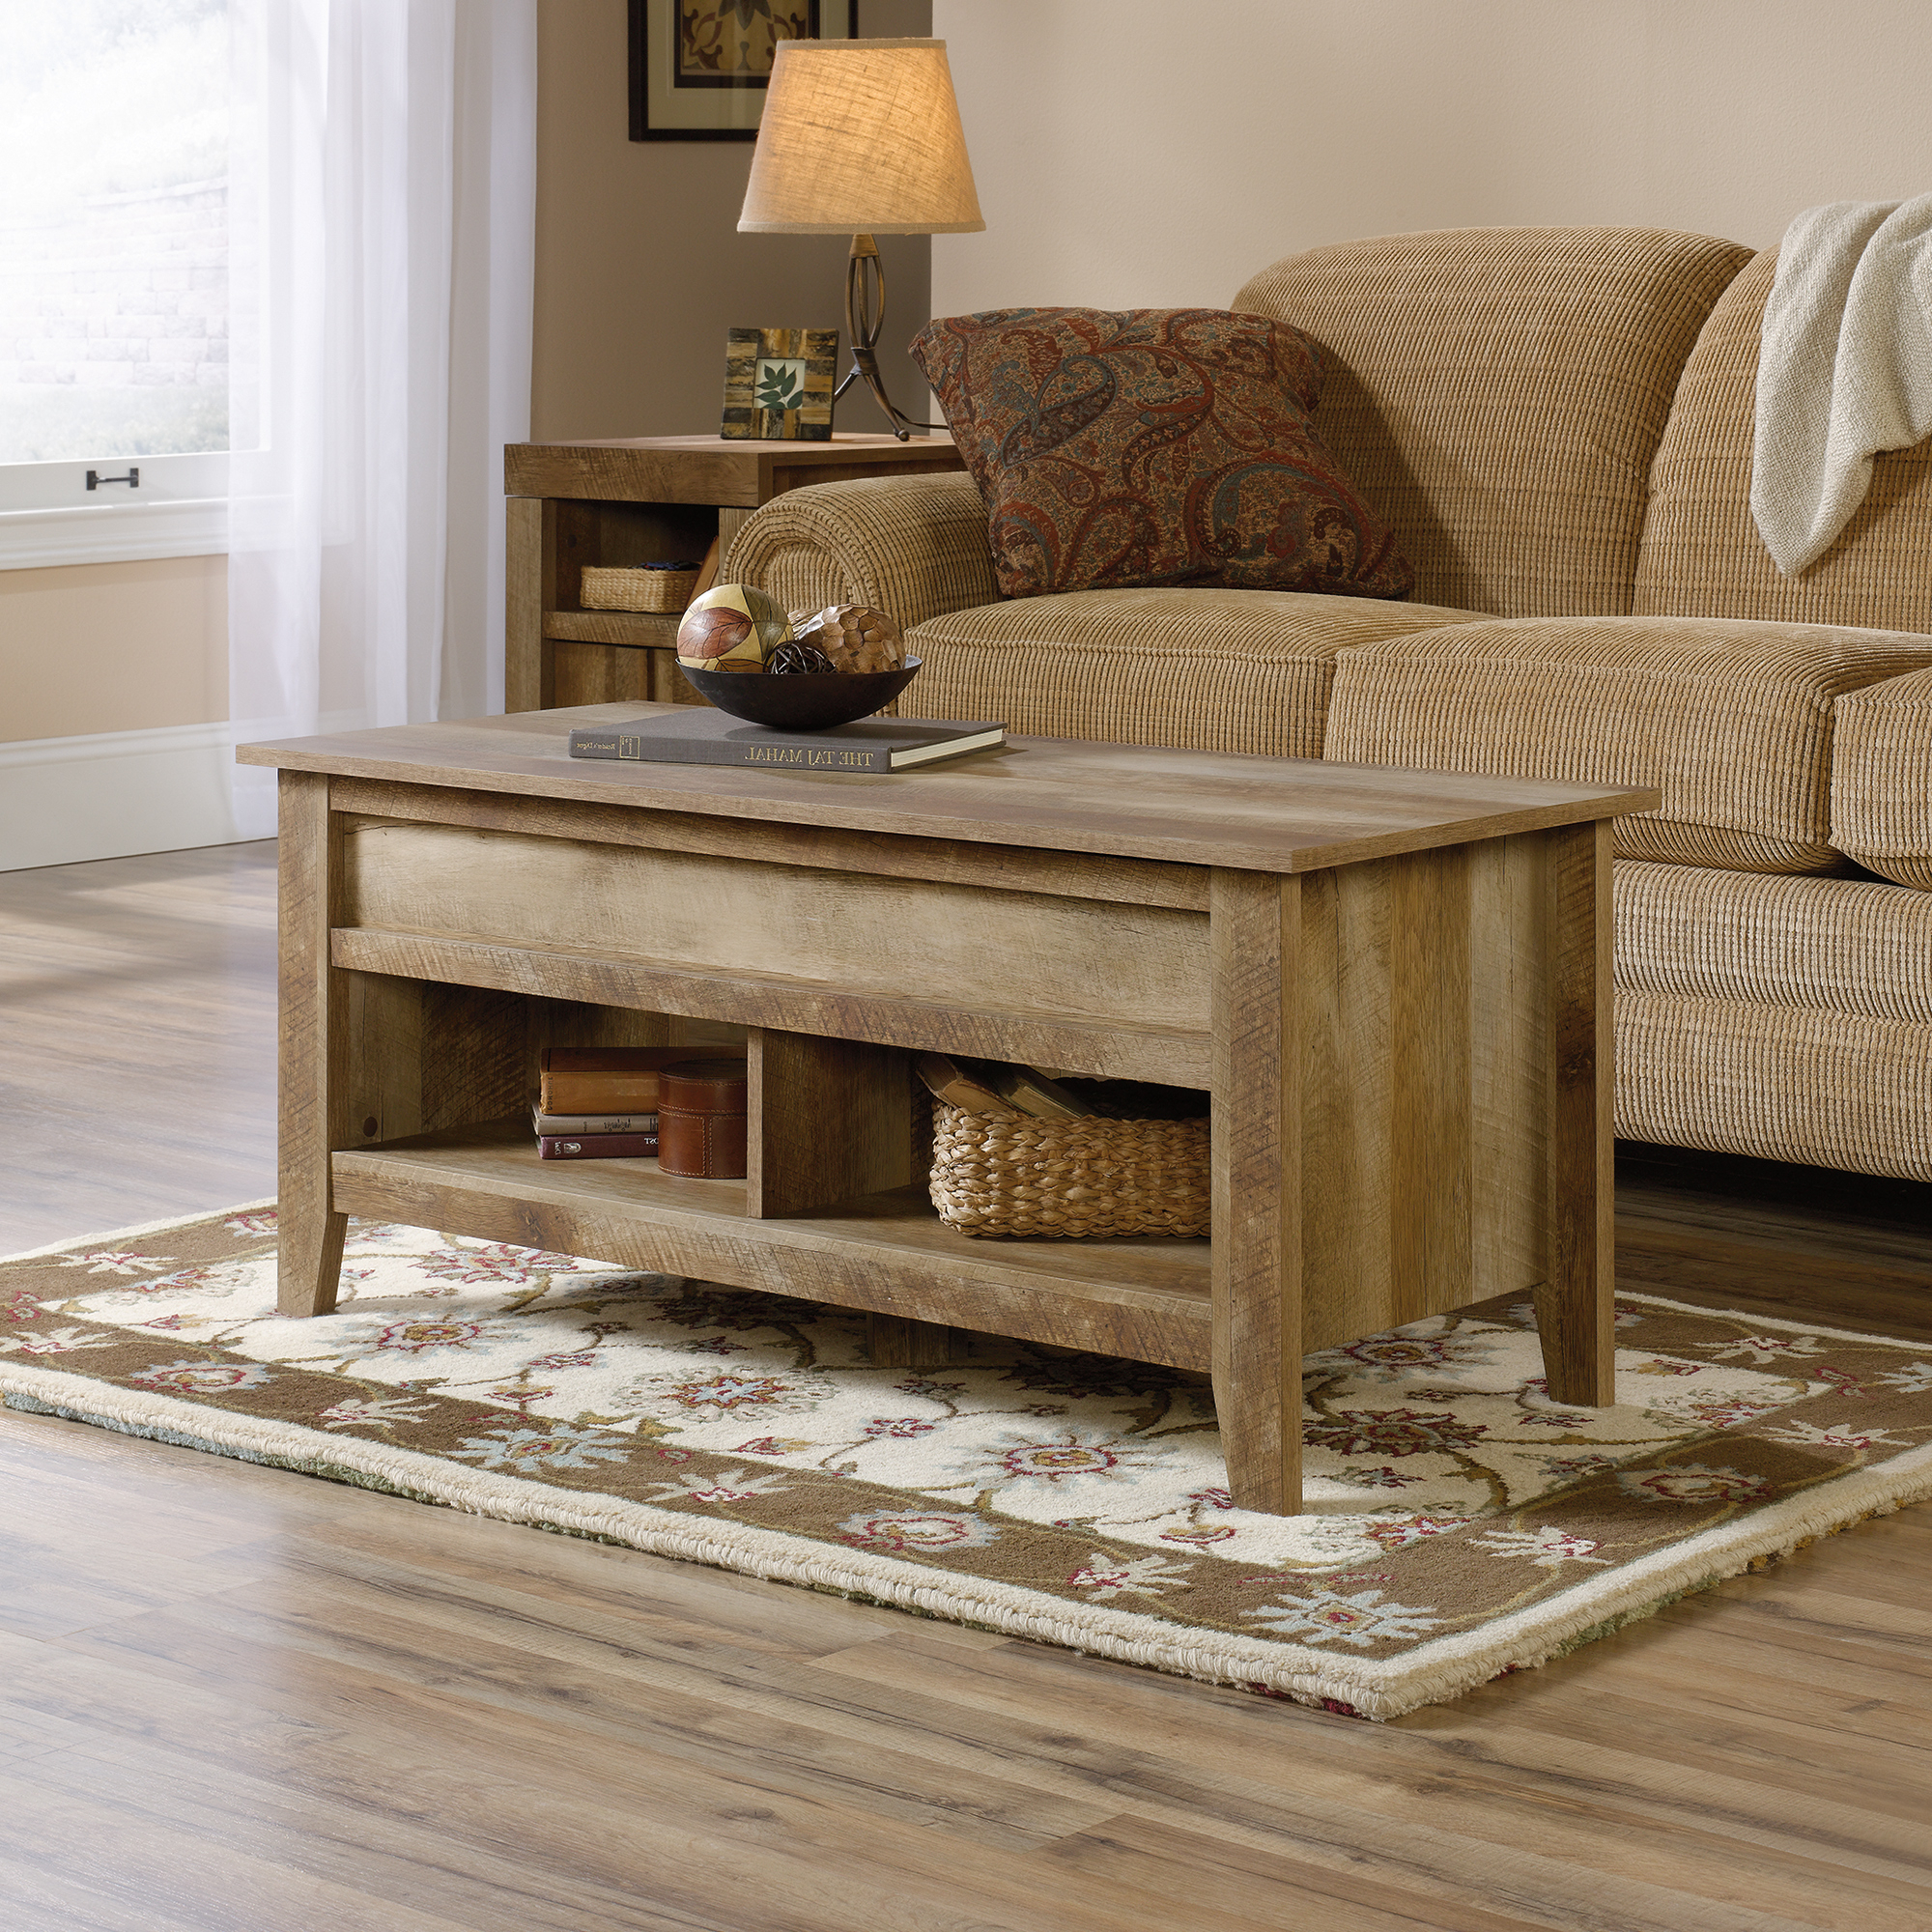 Craftsman Cocktail Tables With Well Liked Dakota Pass Rustic Coffee Table With Lift Top (420011) – Sauder (View 3 of 20)